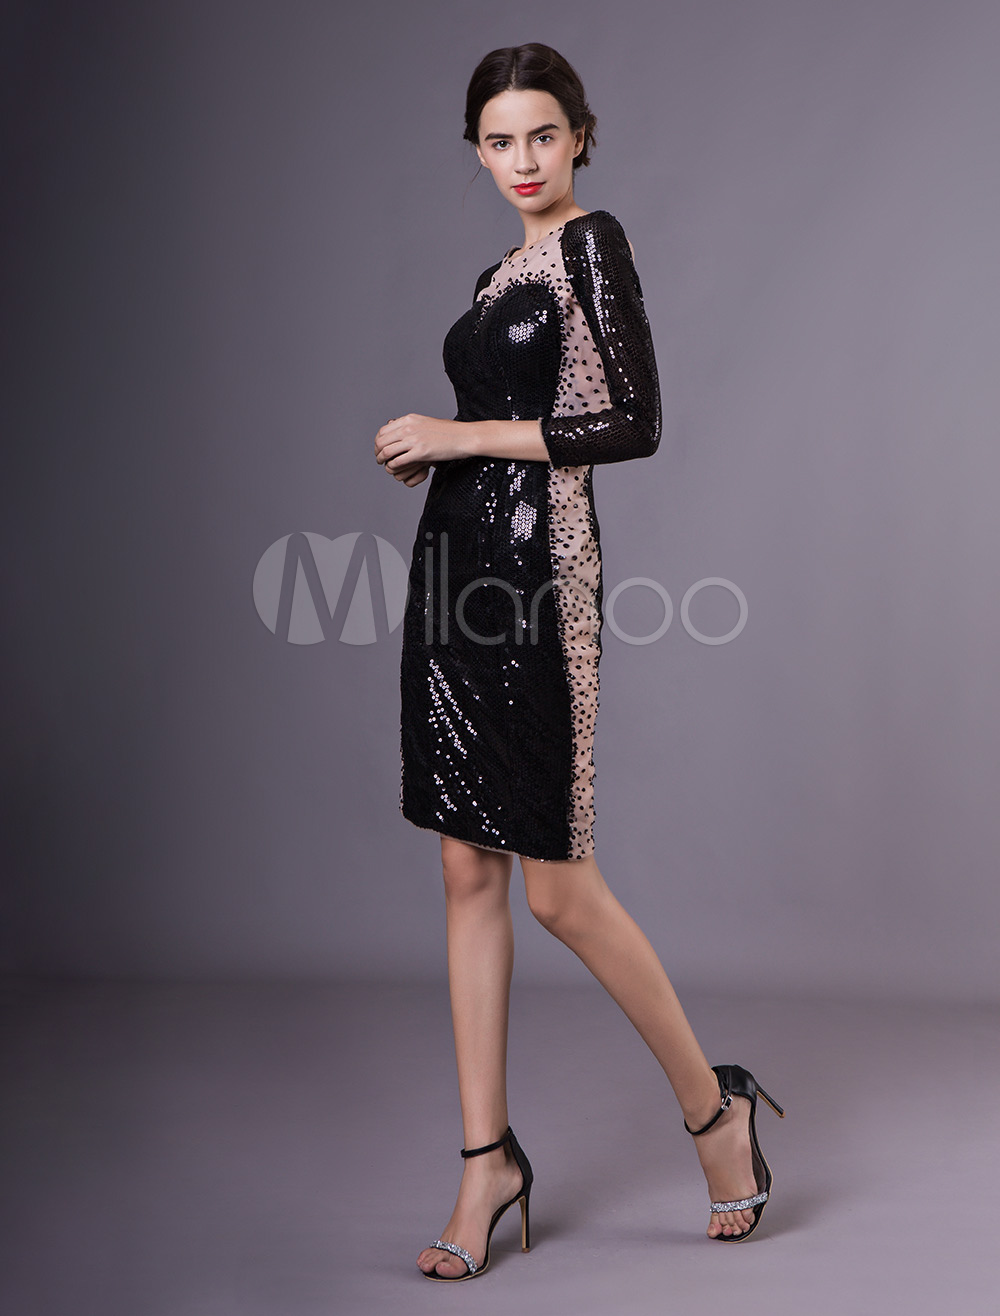 Black Long Sleeves Beading Sequined Sheath Cocktail Dress with Jewel Neck  Milanoo